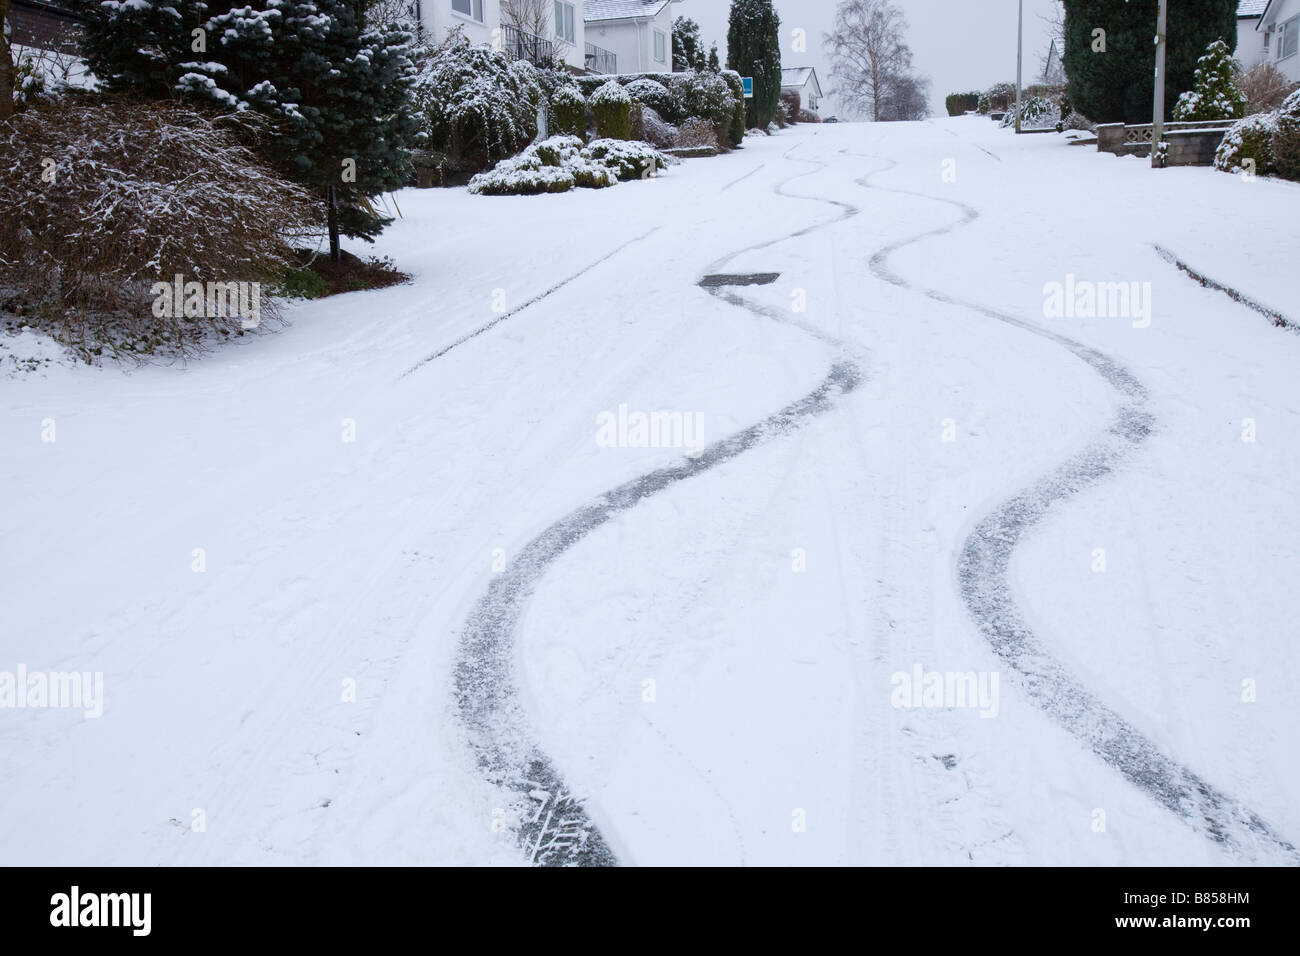 Skid marks in the snow from a car on a steep road in Ambleside UK